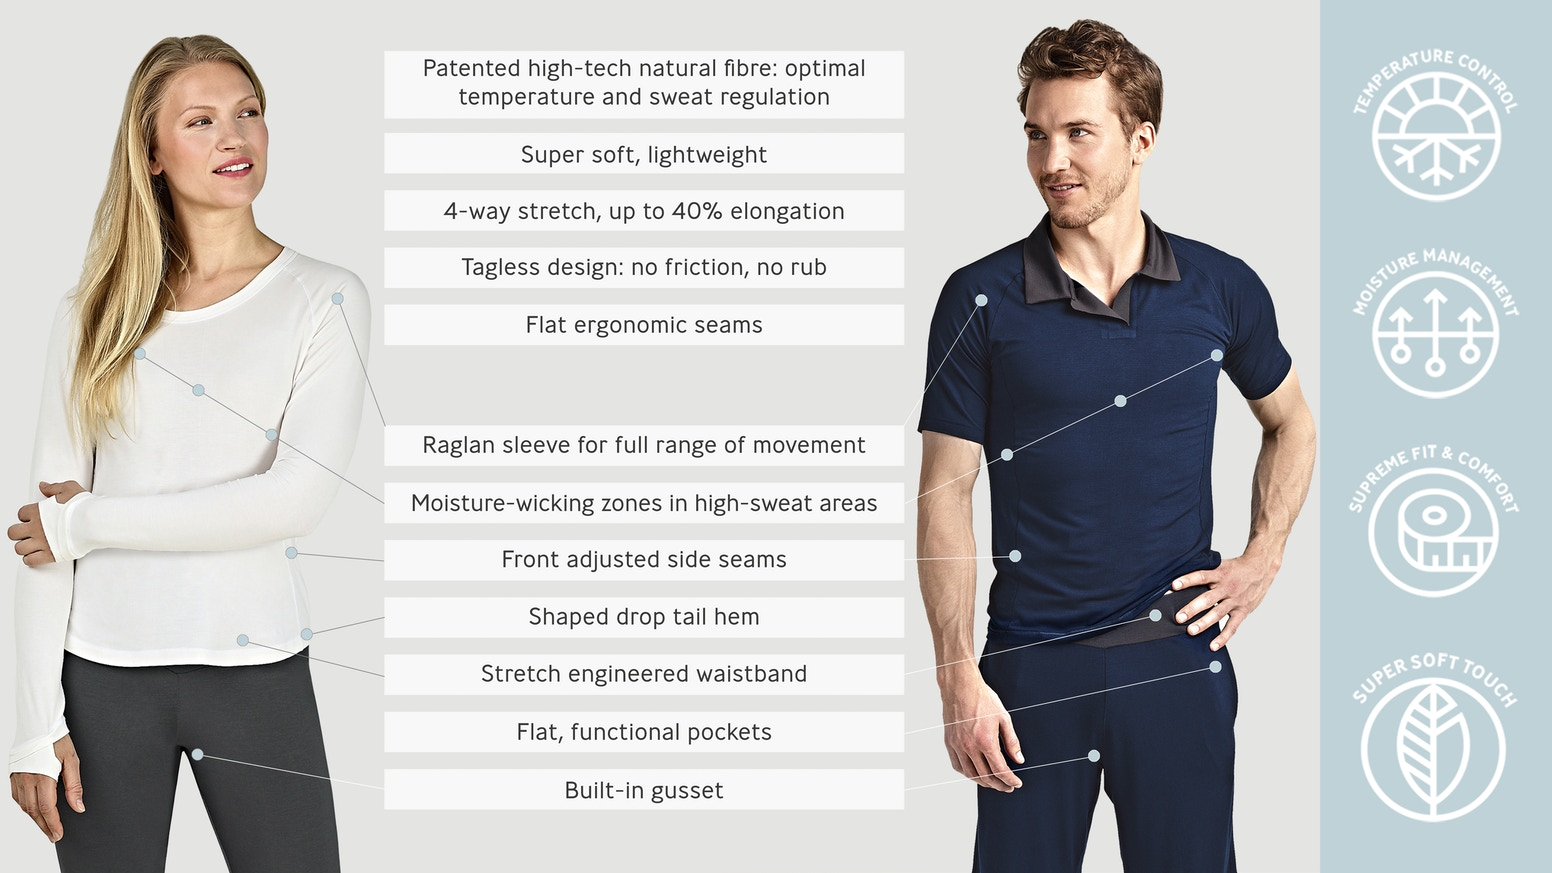 Our high tech natural fabric is scientifically proven to boost sleep comfort  on 4 levels for fd5ddd4c8